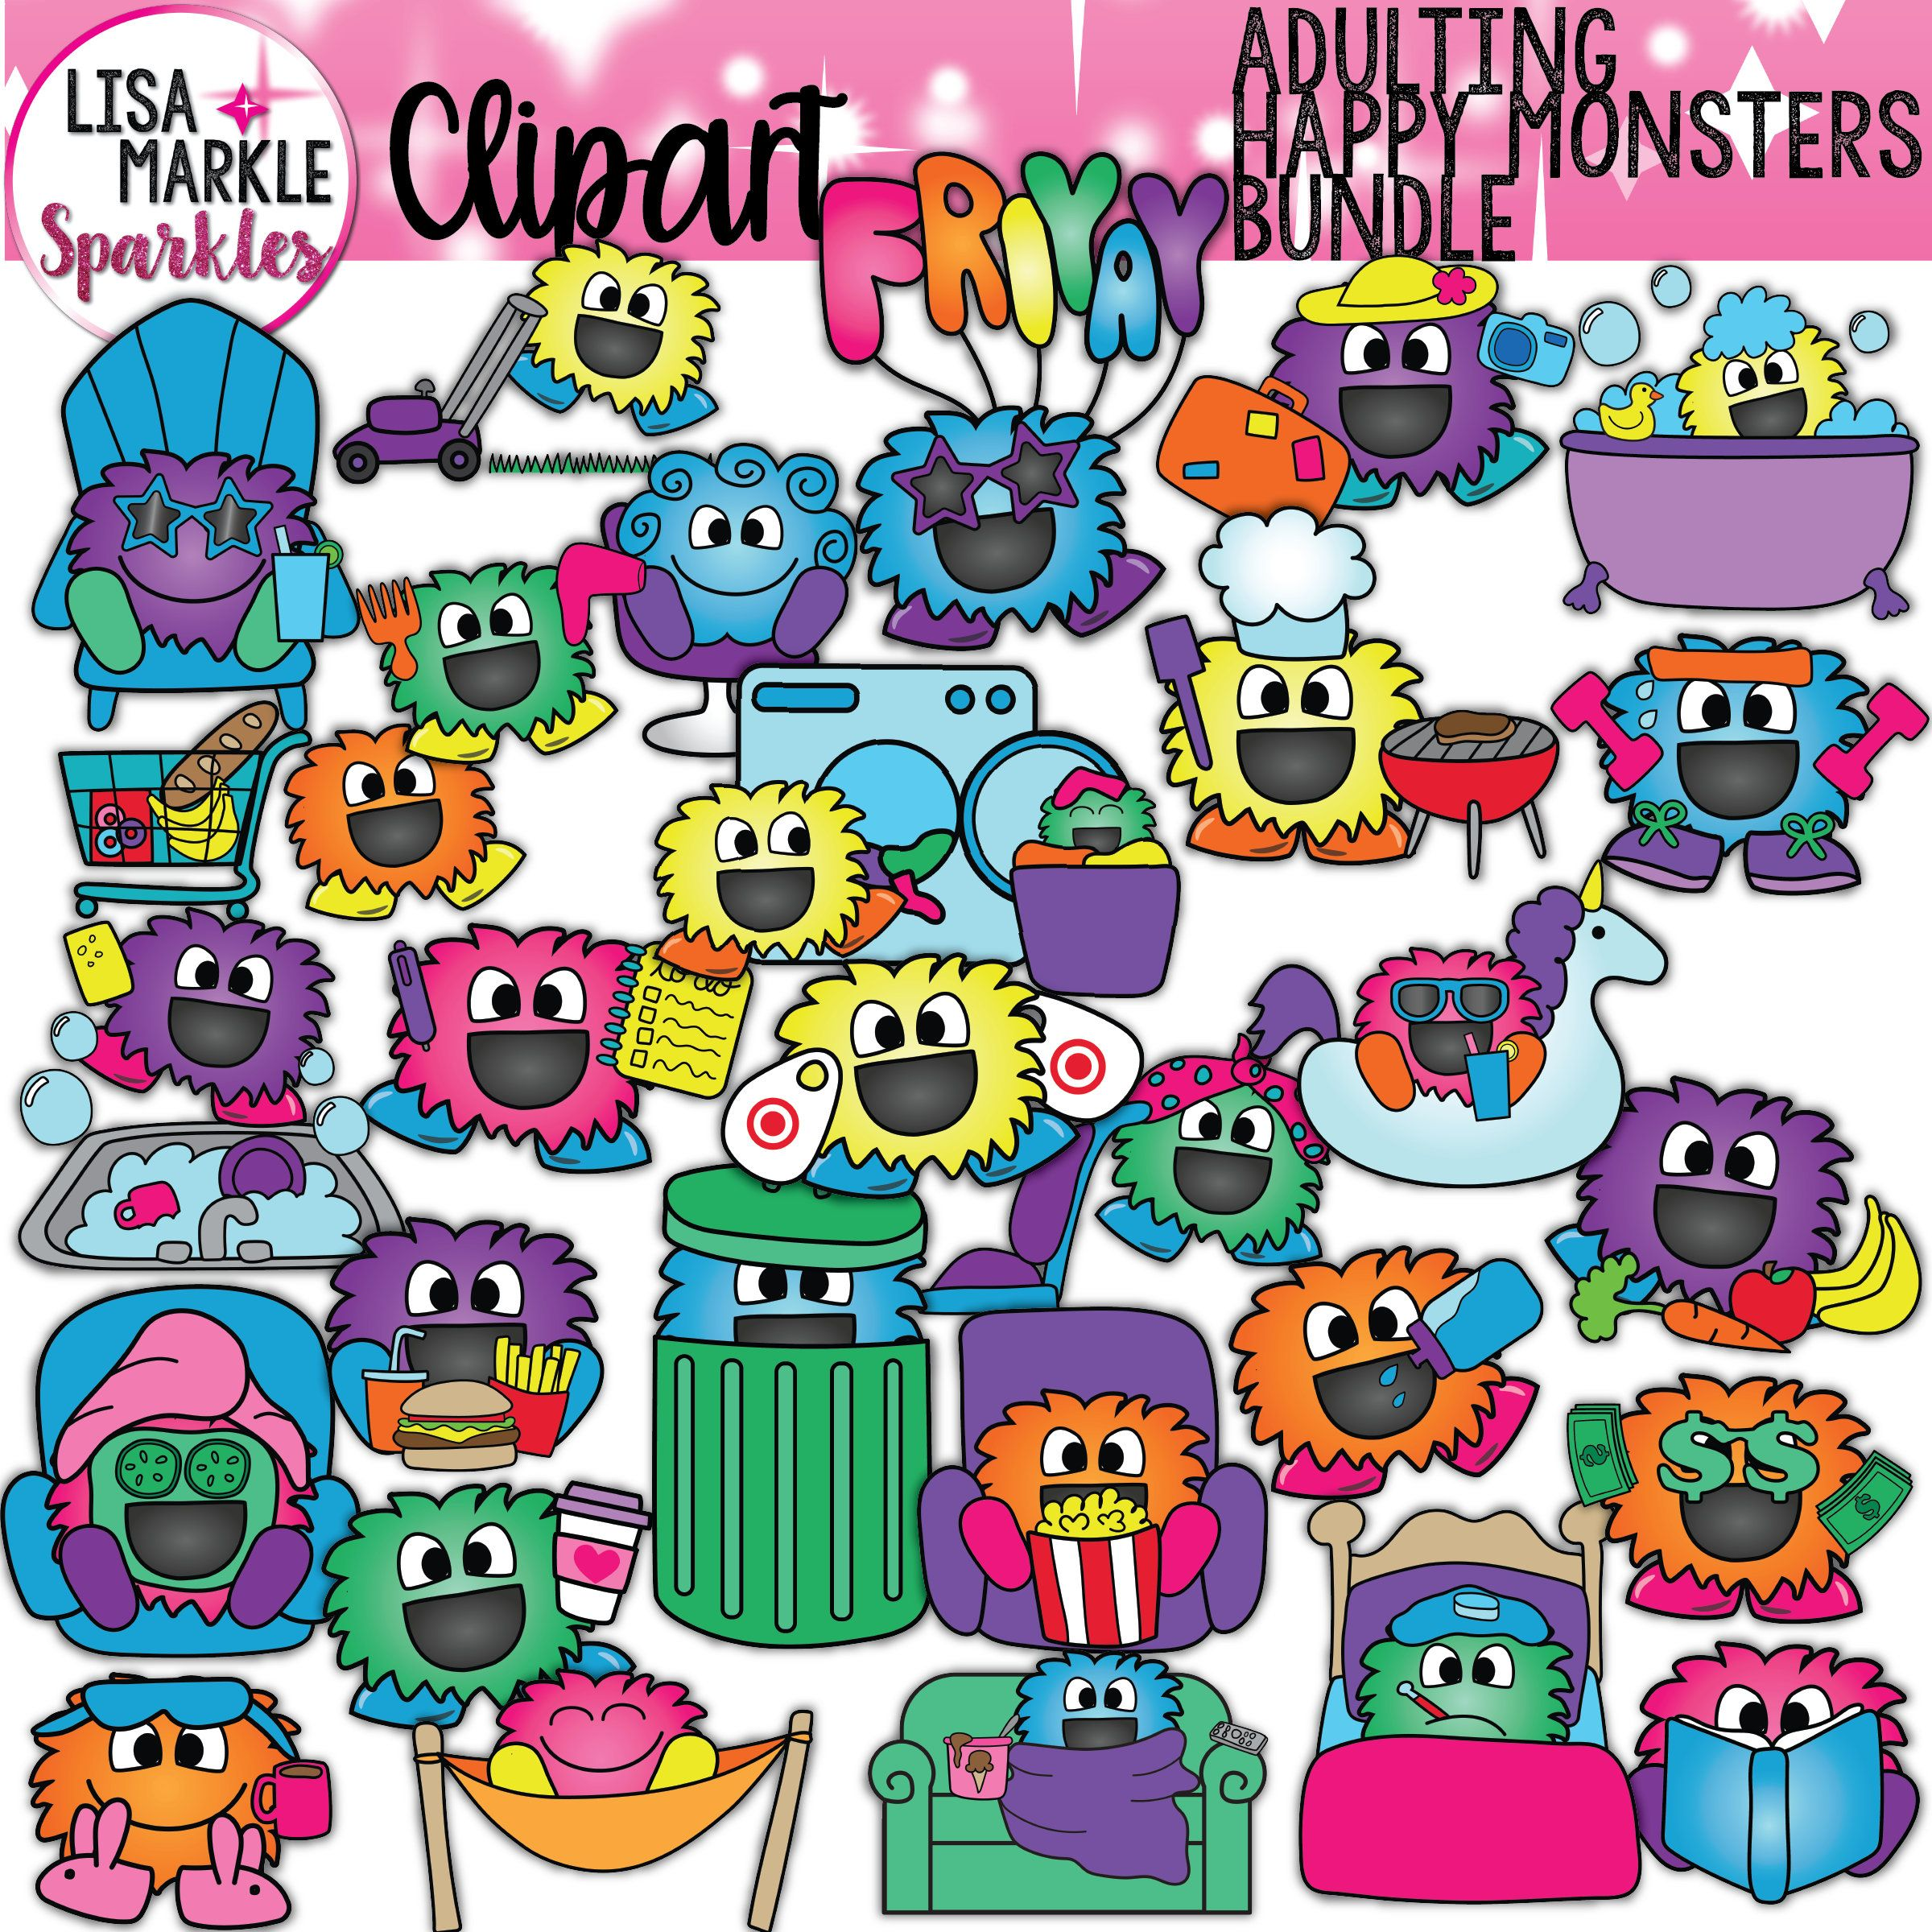 Workout monster clipart clip transparent download Adulting Planner Clipart Happy Monsters Vacation Pool Spa ... clip transparent download